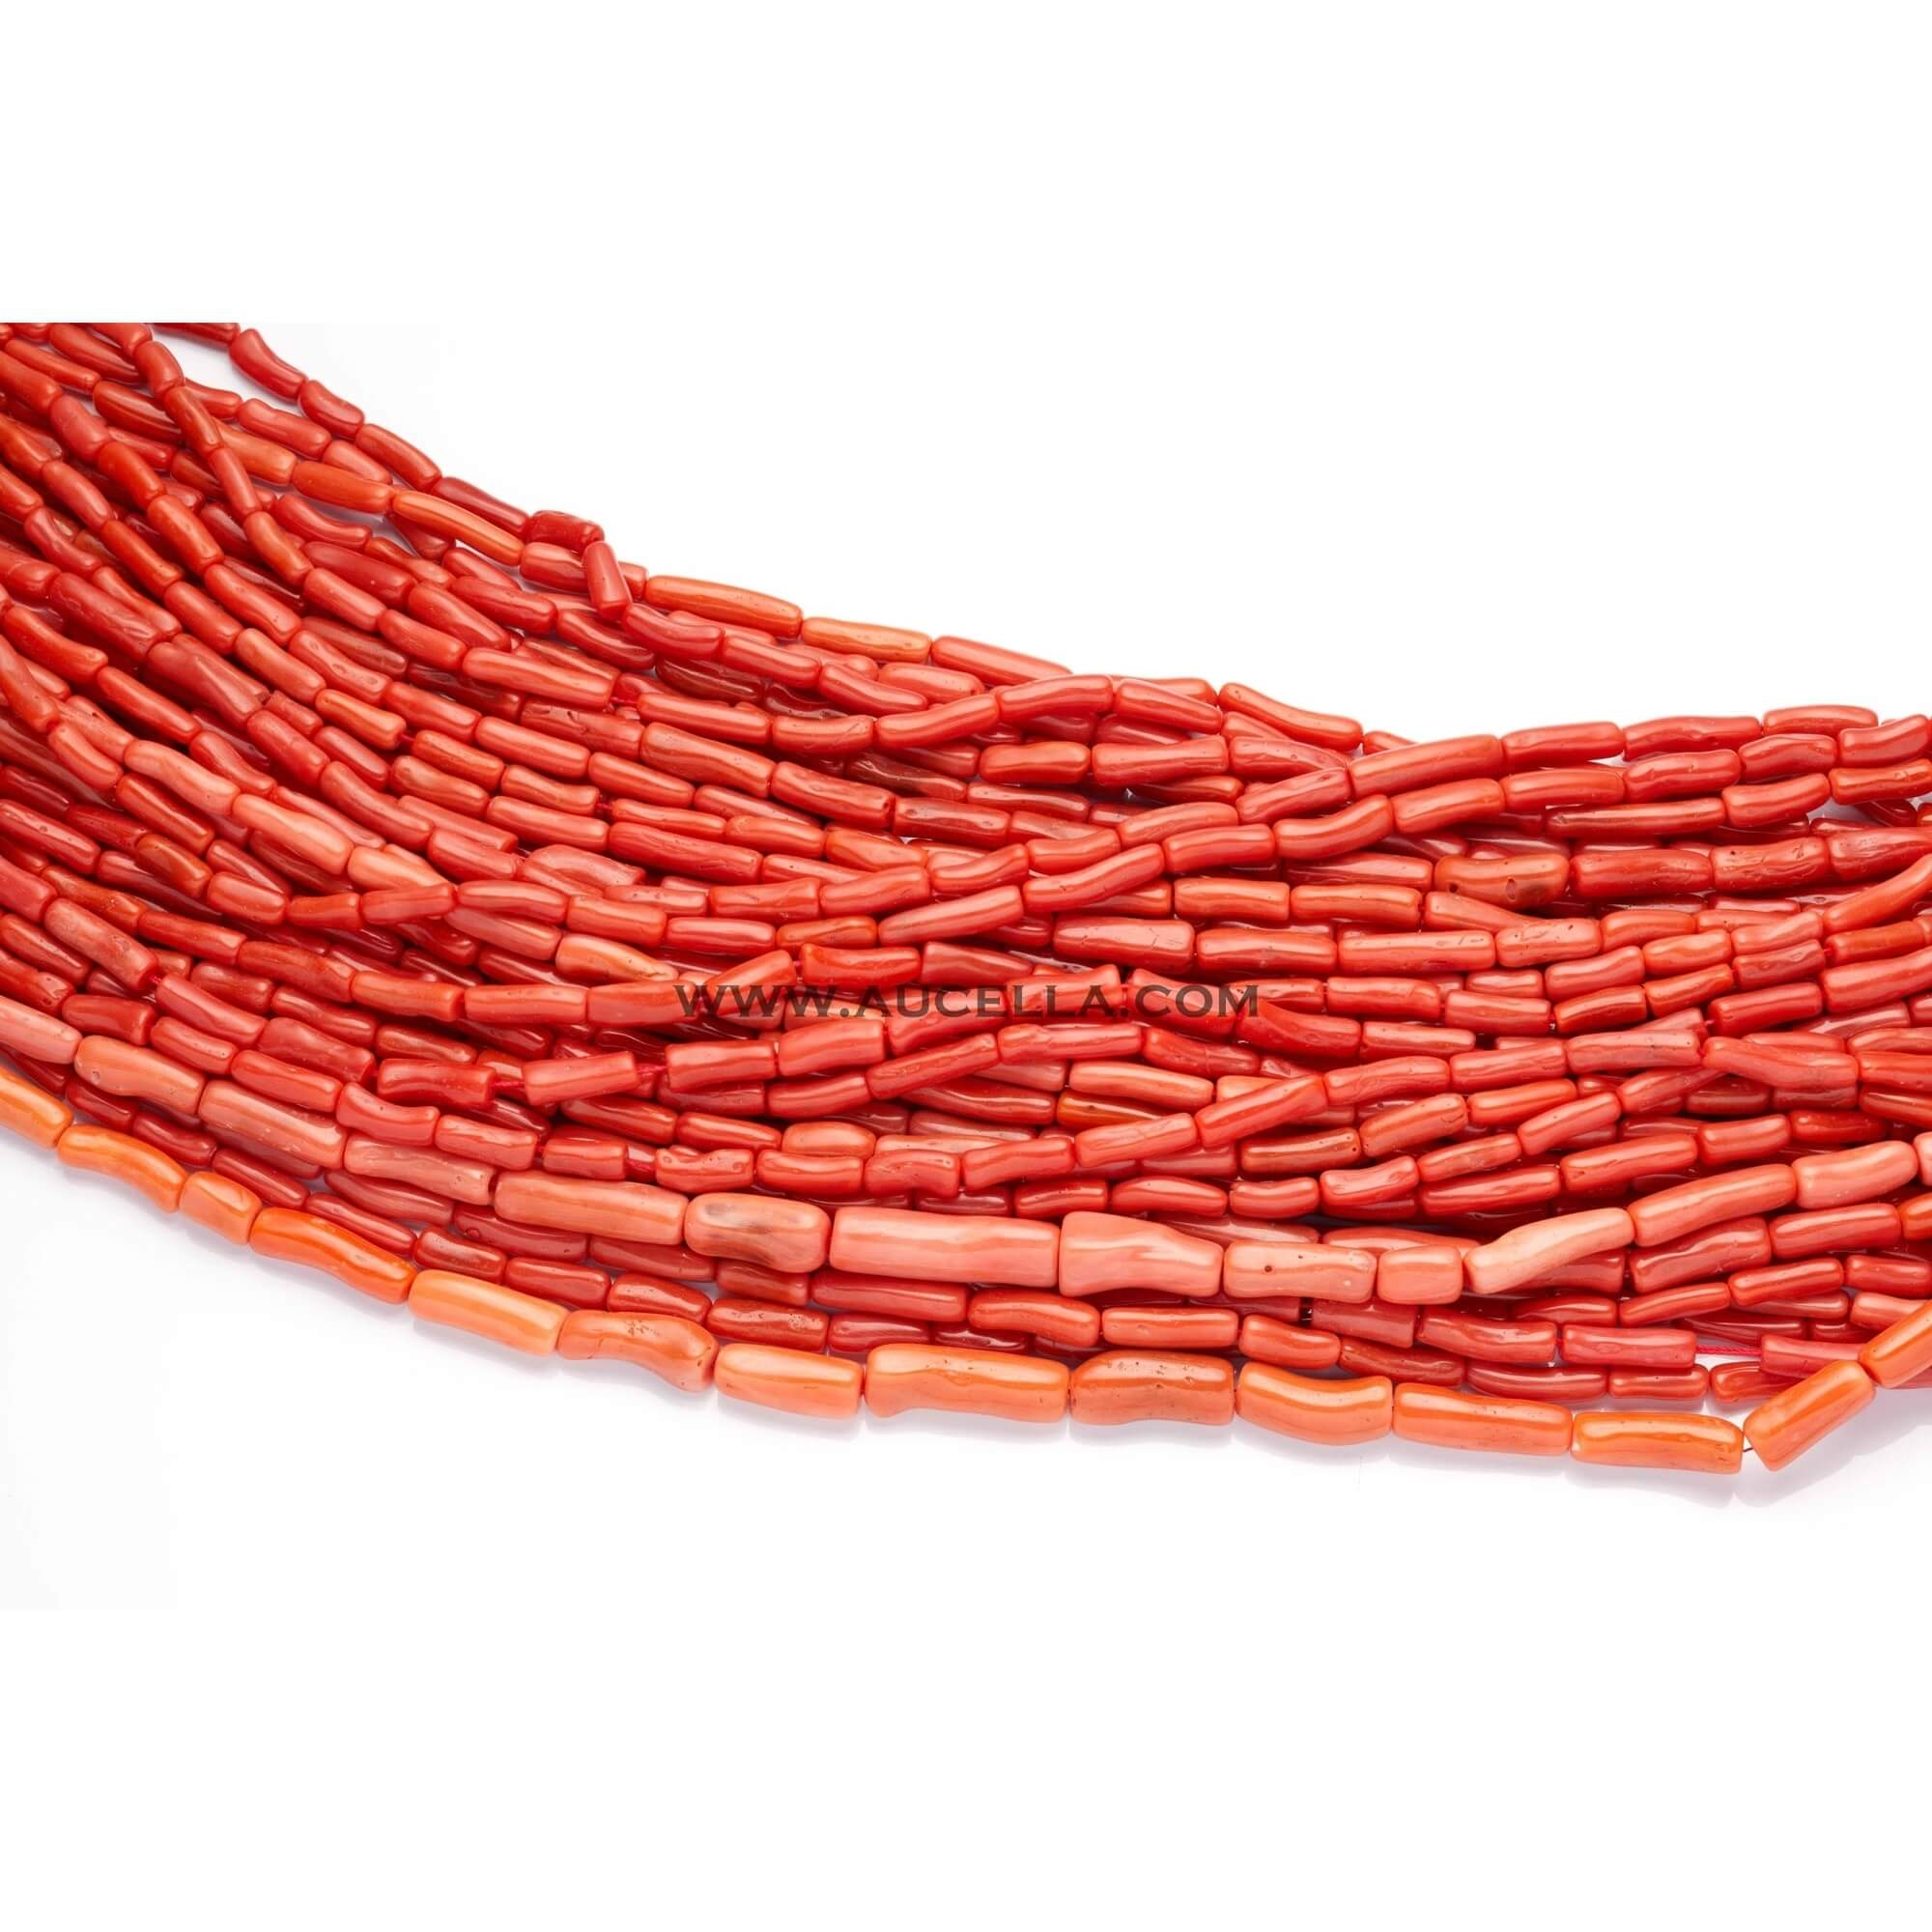 Natural red coral tube shape low quality mix size